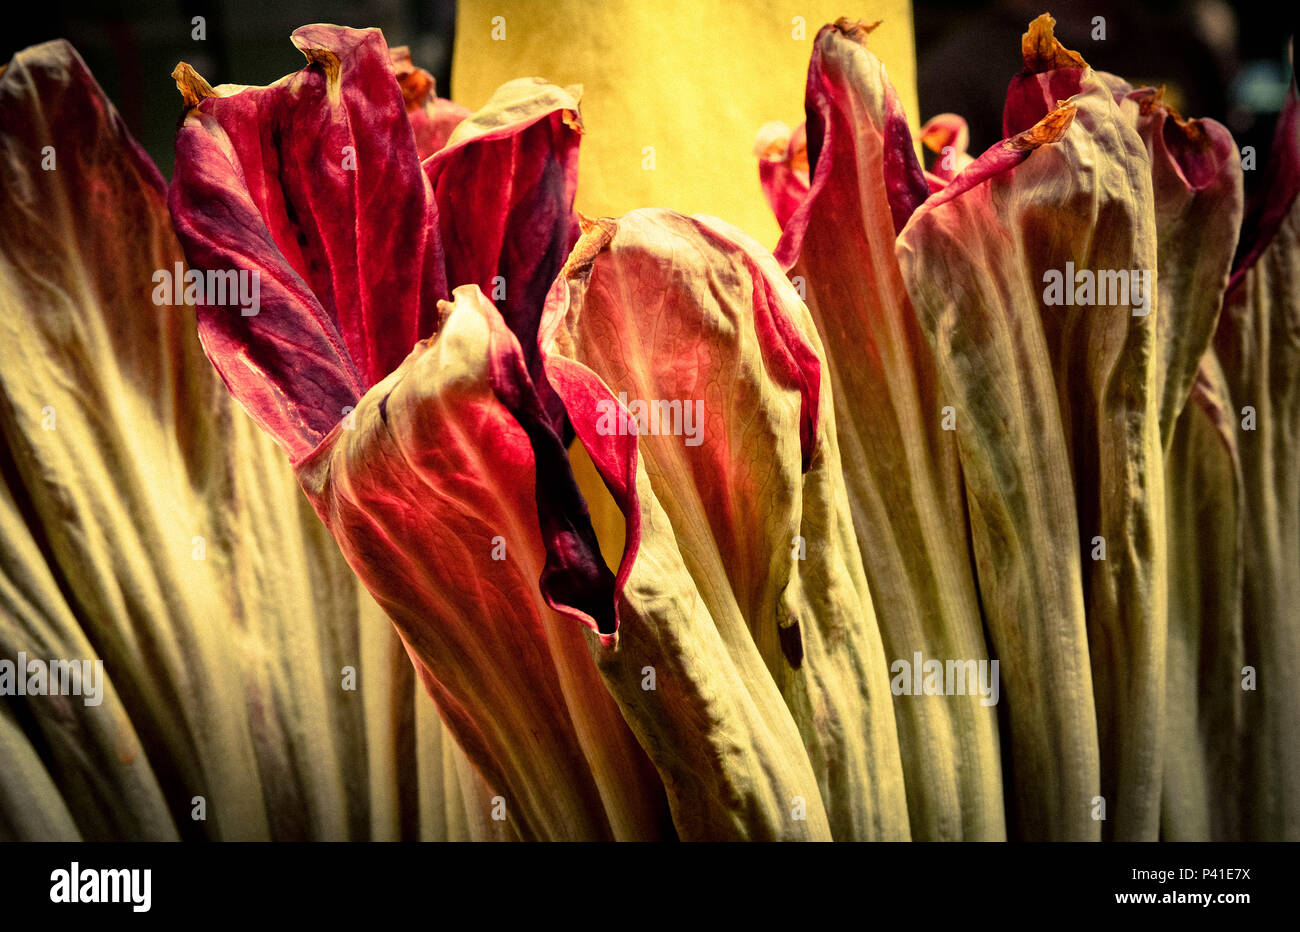 A close-up detail of the outer petals of the rare Corpse flower in bloom, famous as it rarely blooms and for it's smelly rotting flesh odor, also know - Stock Image